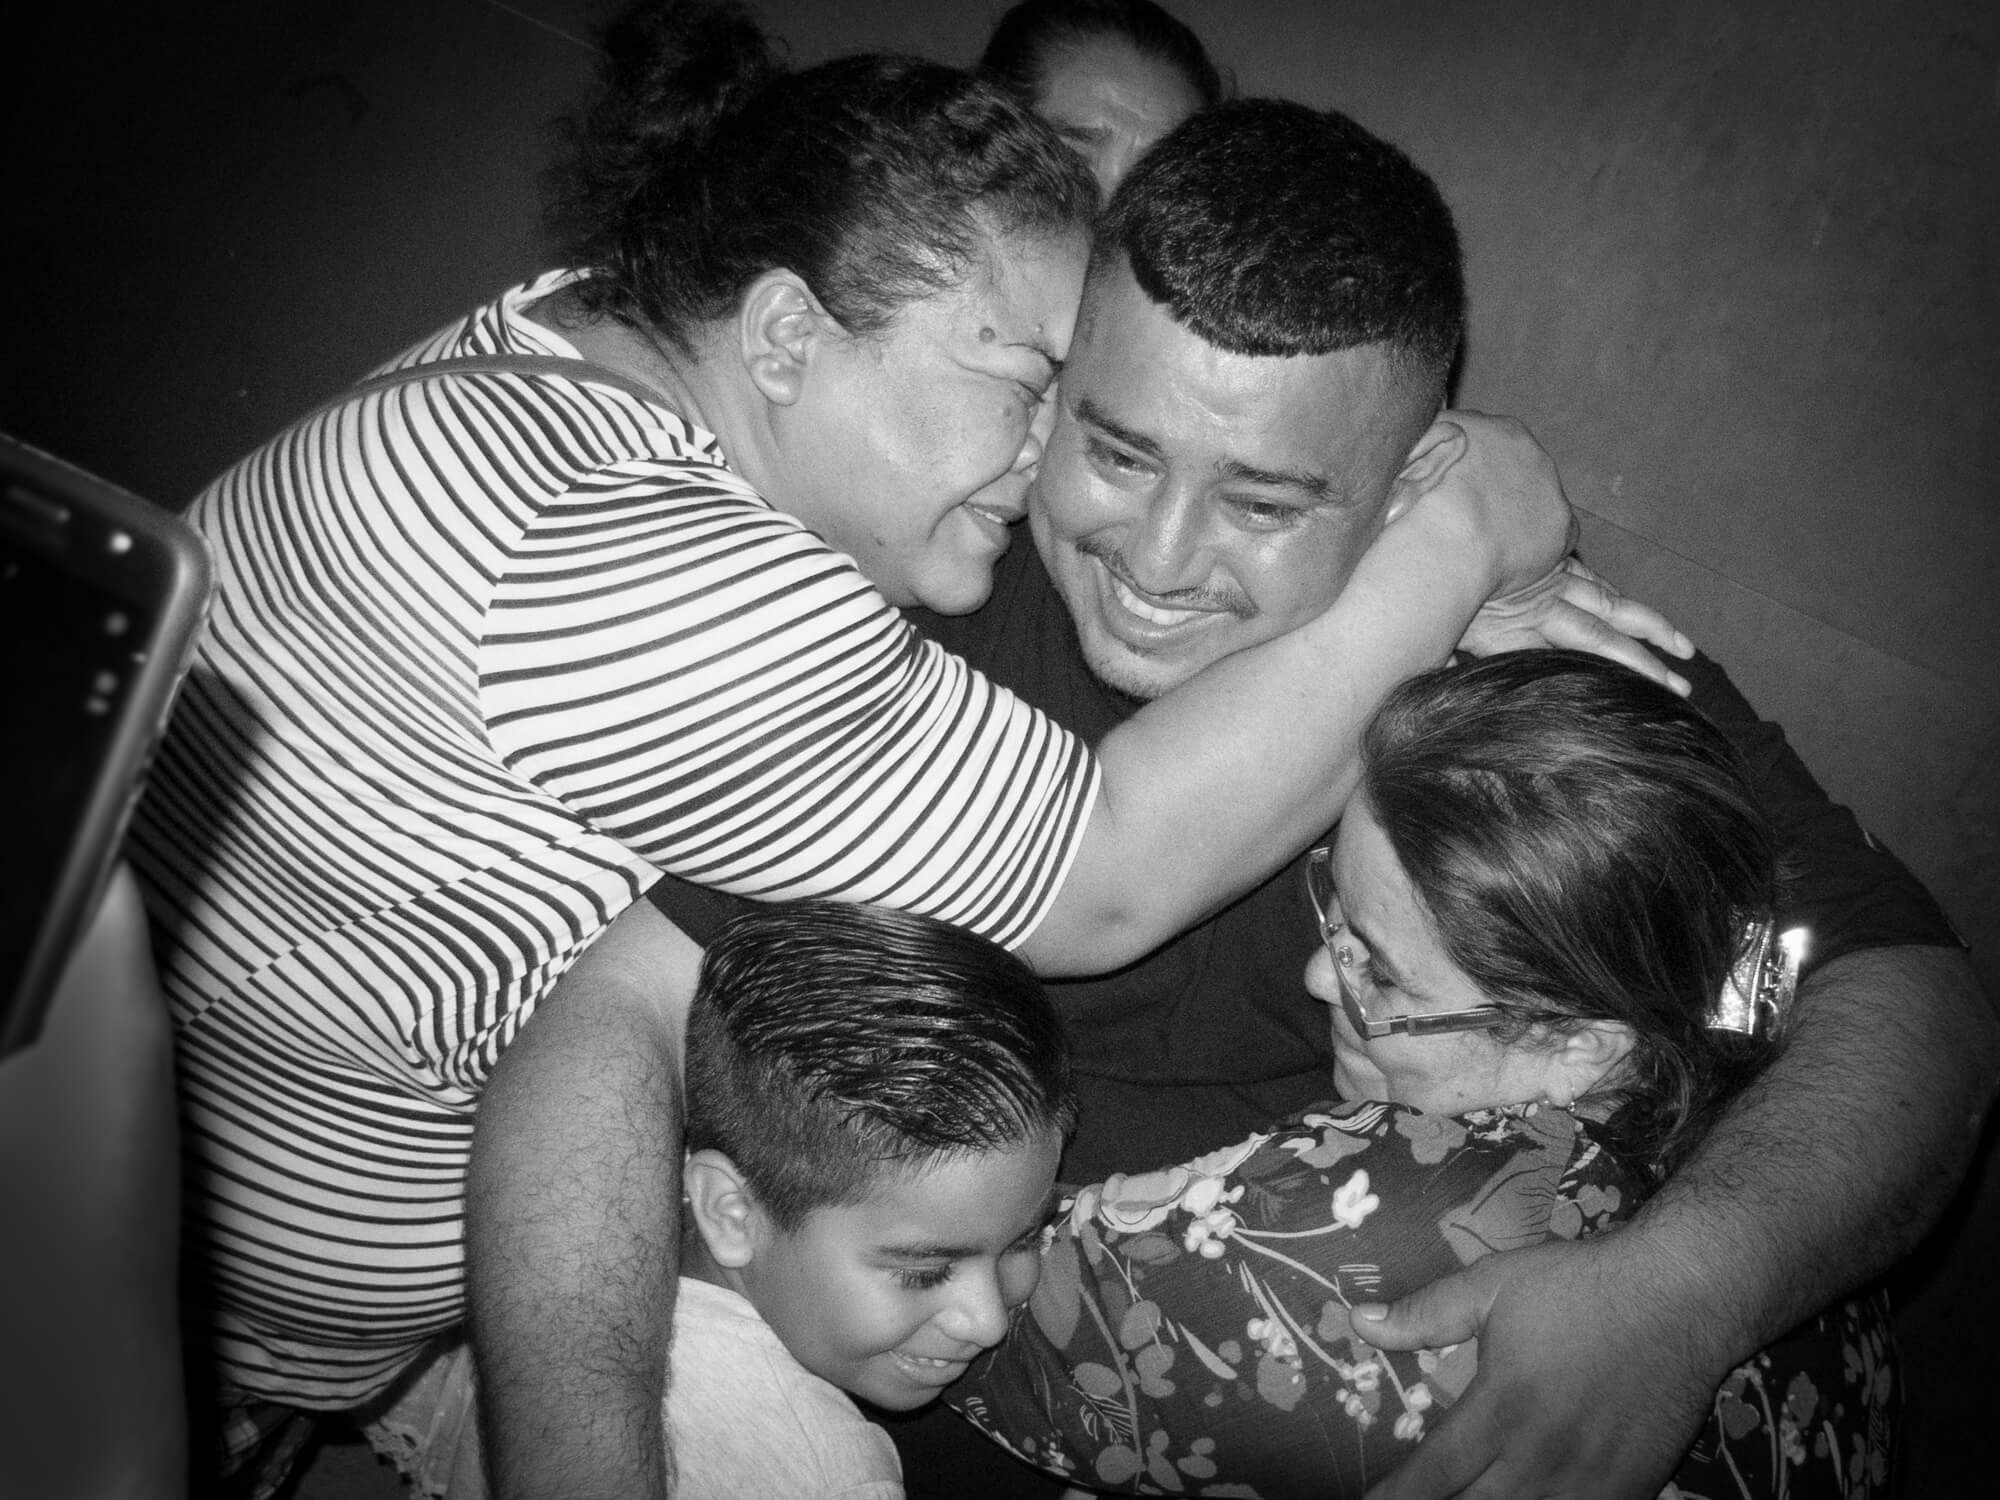 Neighbours hugging Jhony after four months in pretrial detention at the El Progreso prison Photo Credit: Radio Progreso